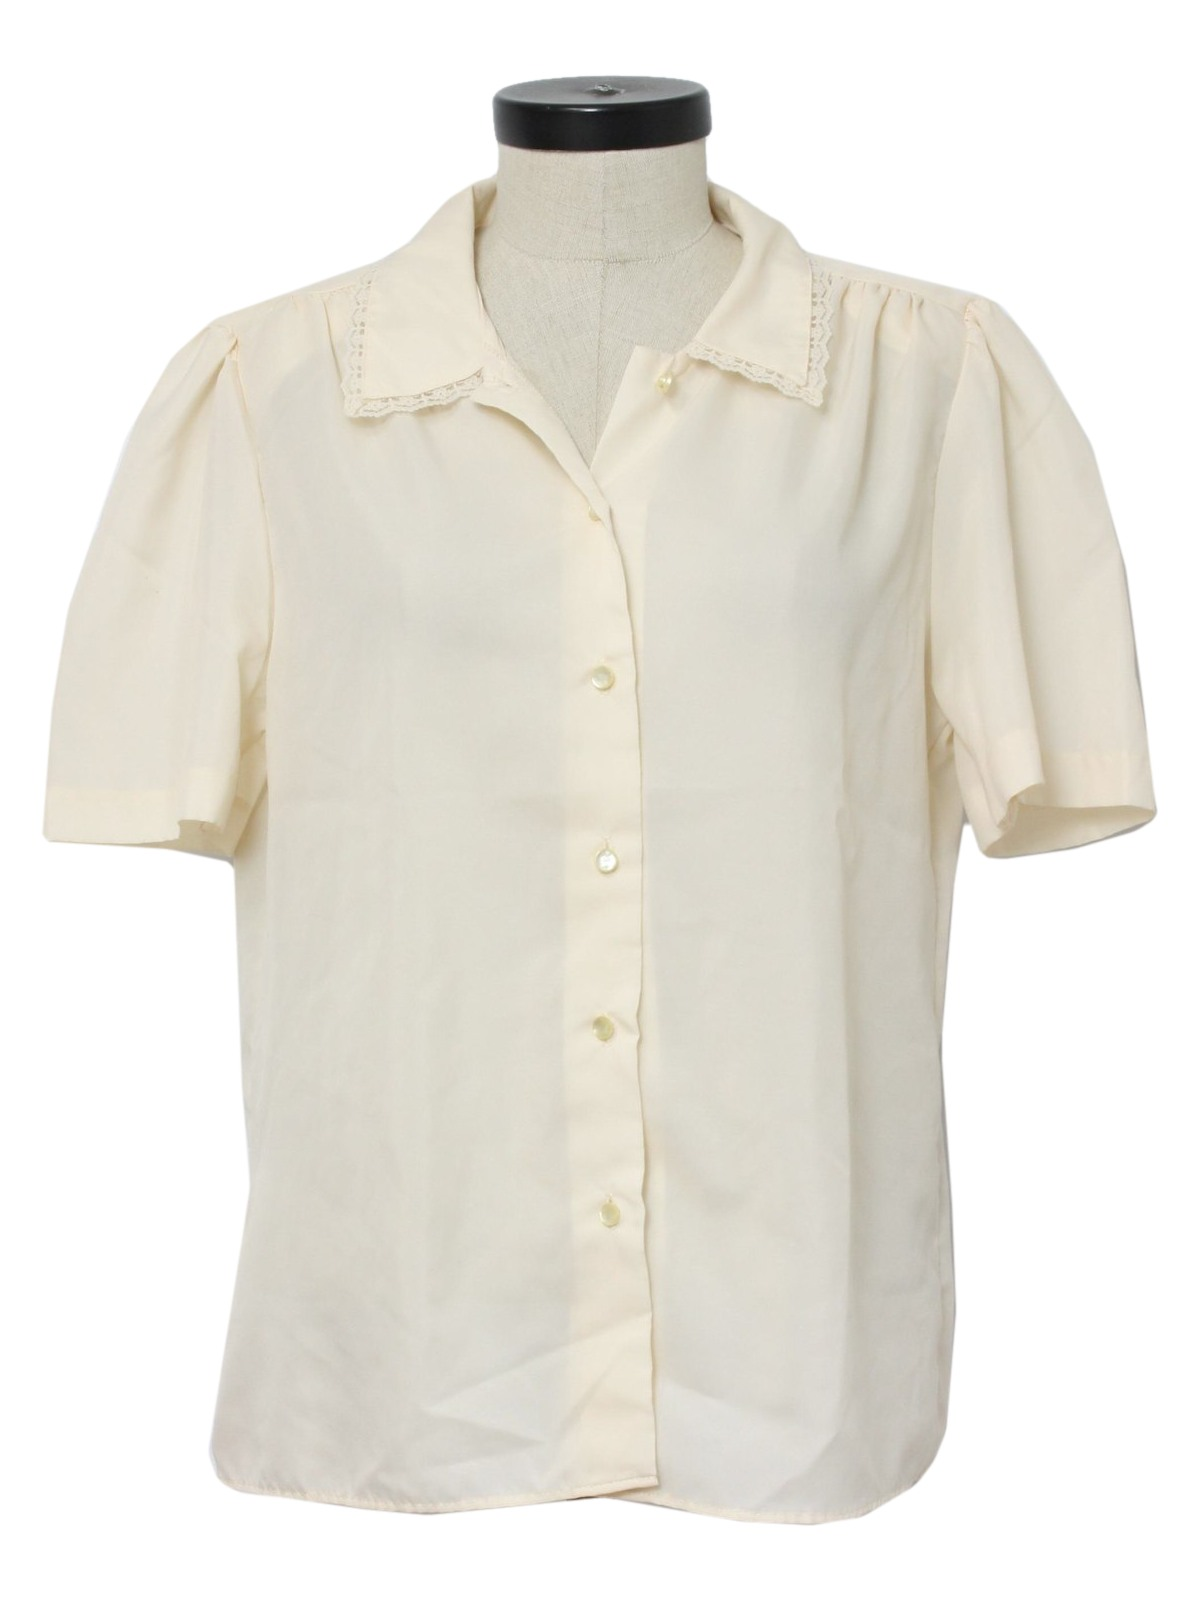 39a11979 Separate Issue 80's Vintage Shirt: 80s -Separate Issue- Womens cream ...